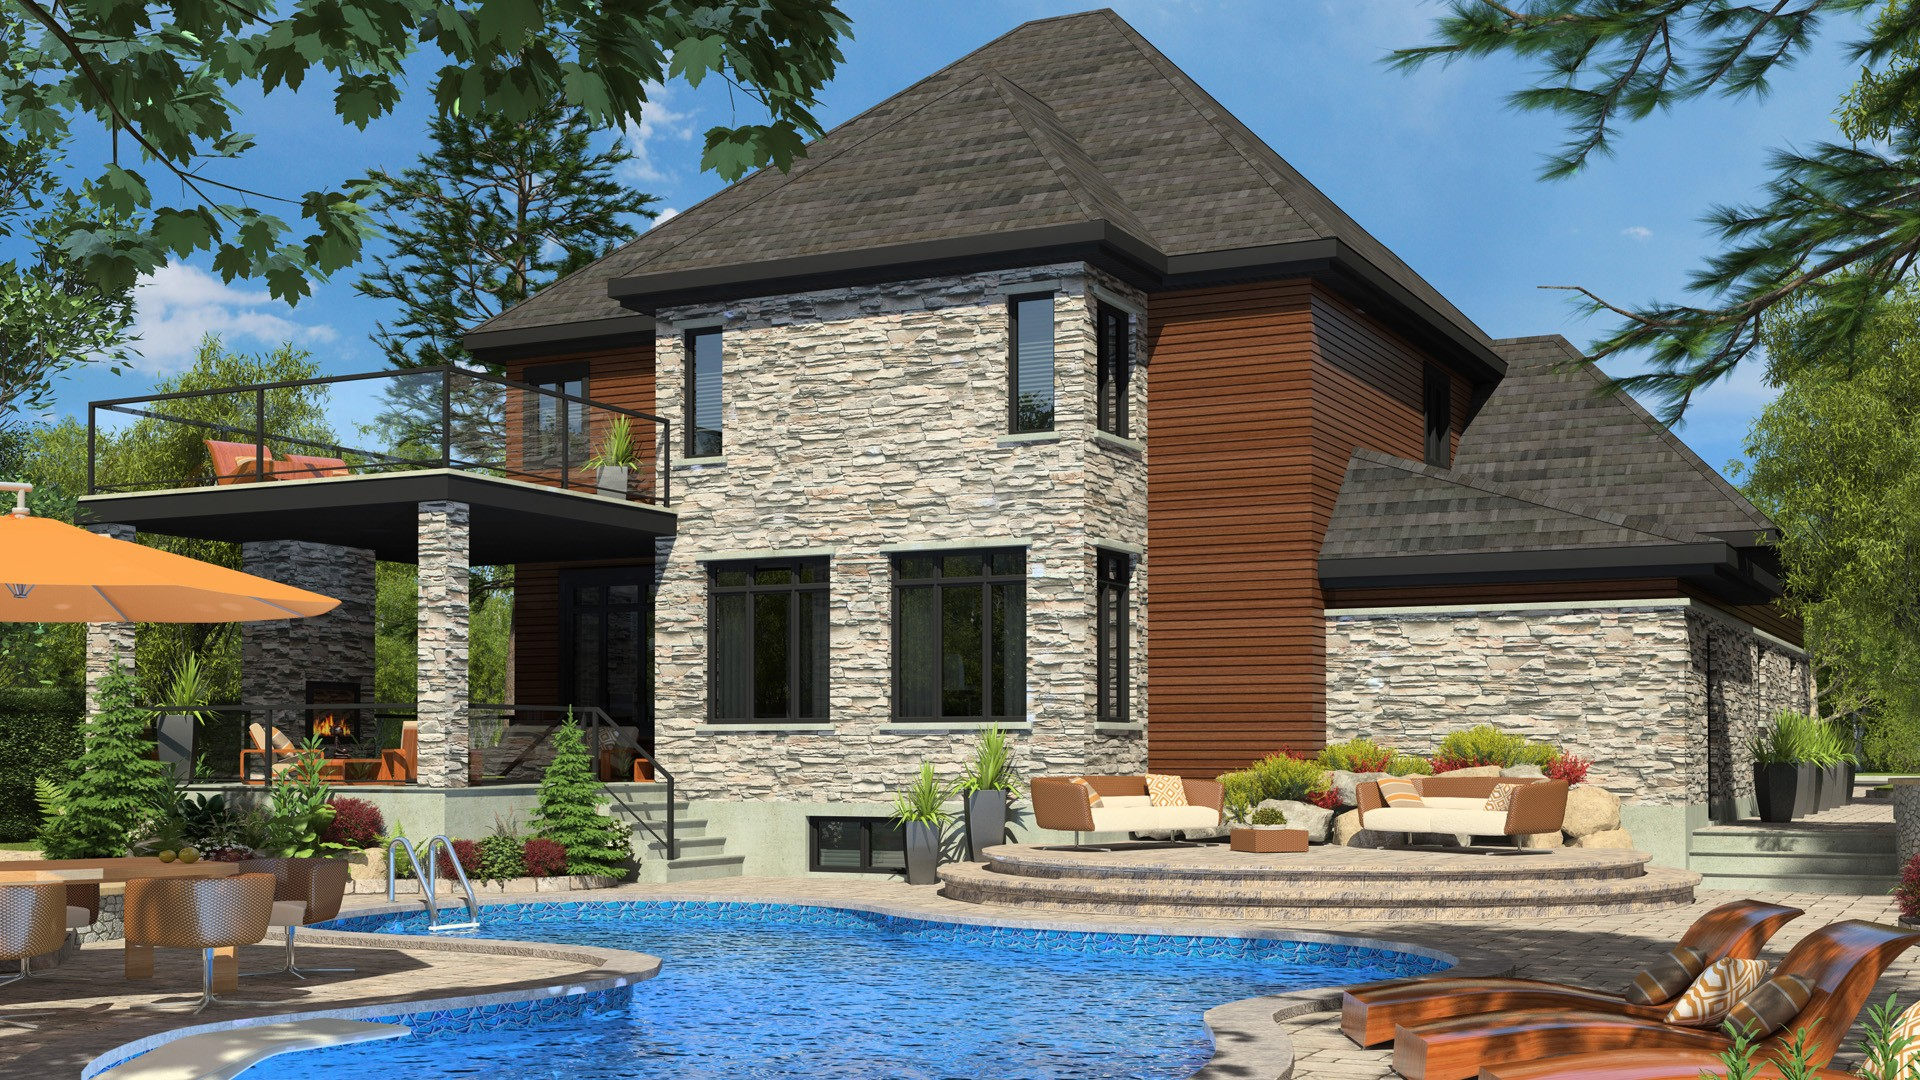 Contemporary Cottage_Nuance_Luxury Home_Domicil